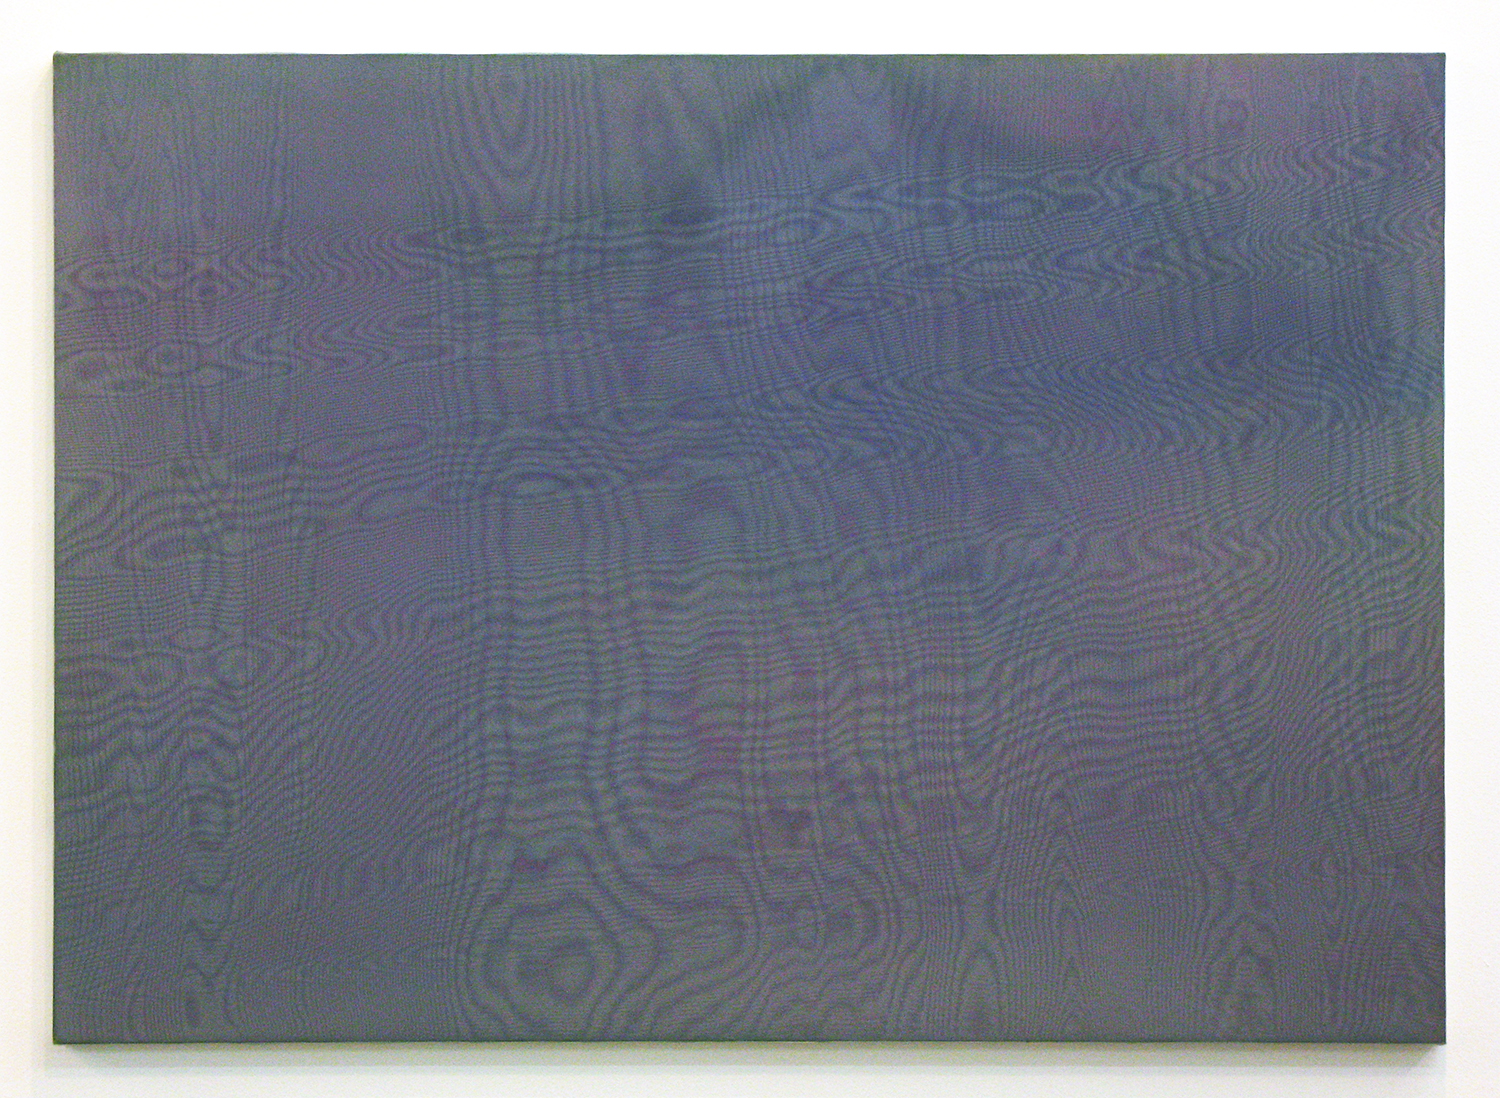 afterglow #4|残光 #4|panel, stainless steel sheet, glass organdy, acrylic|594 x 840 mm|2008